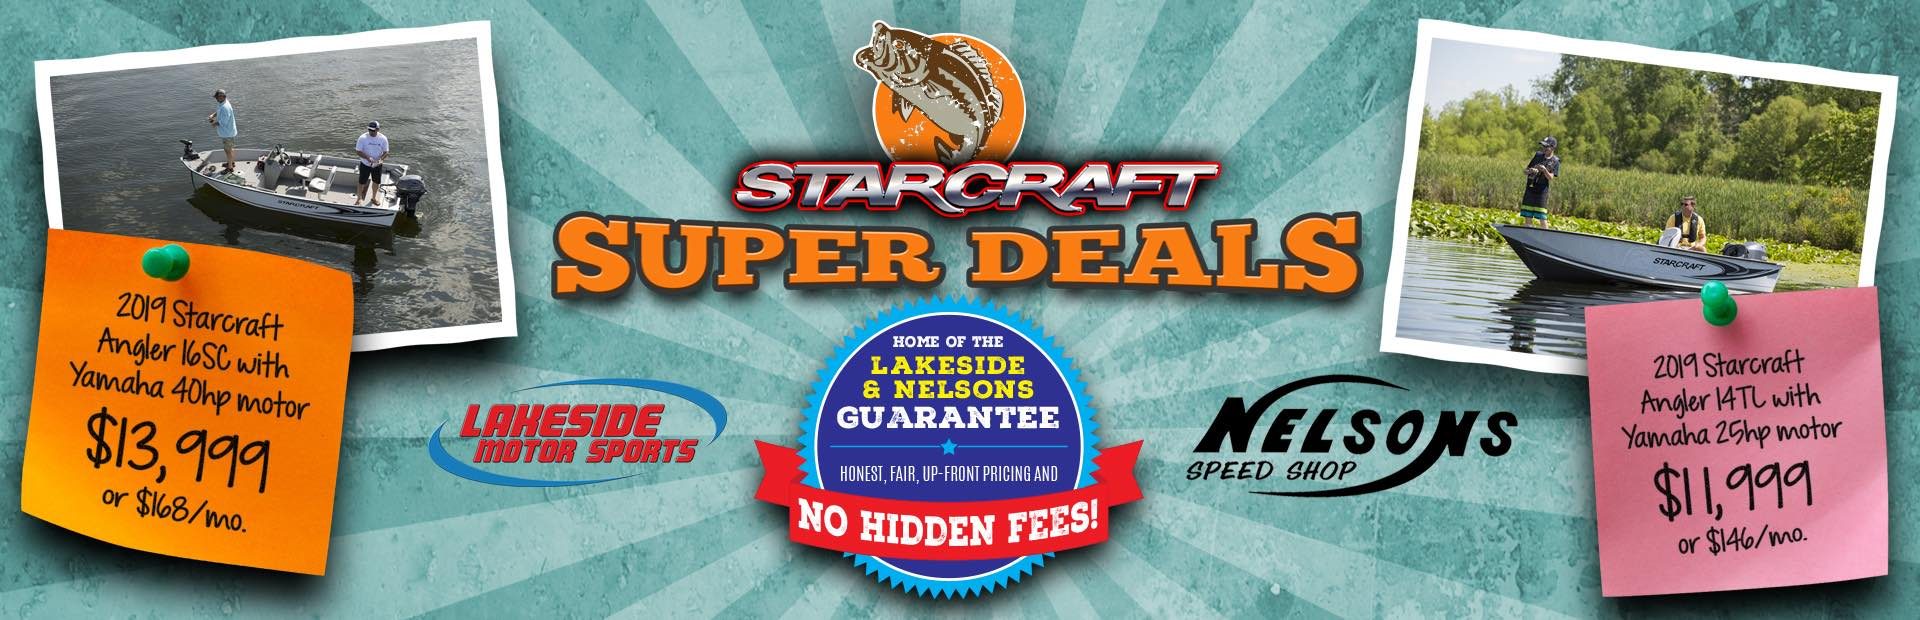 Starcraft Super Deals